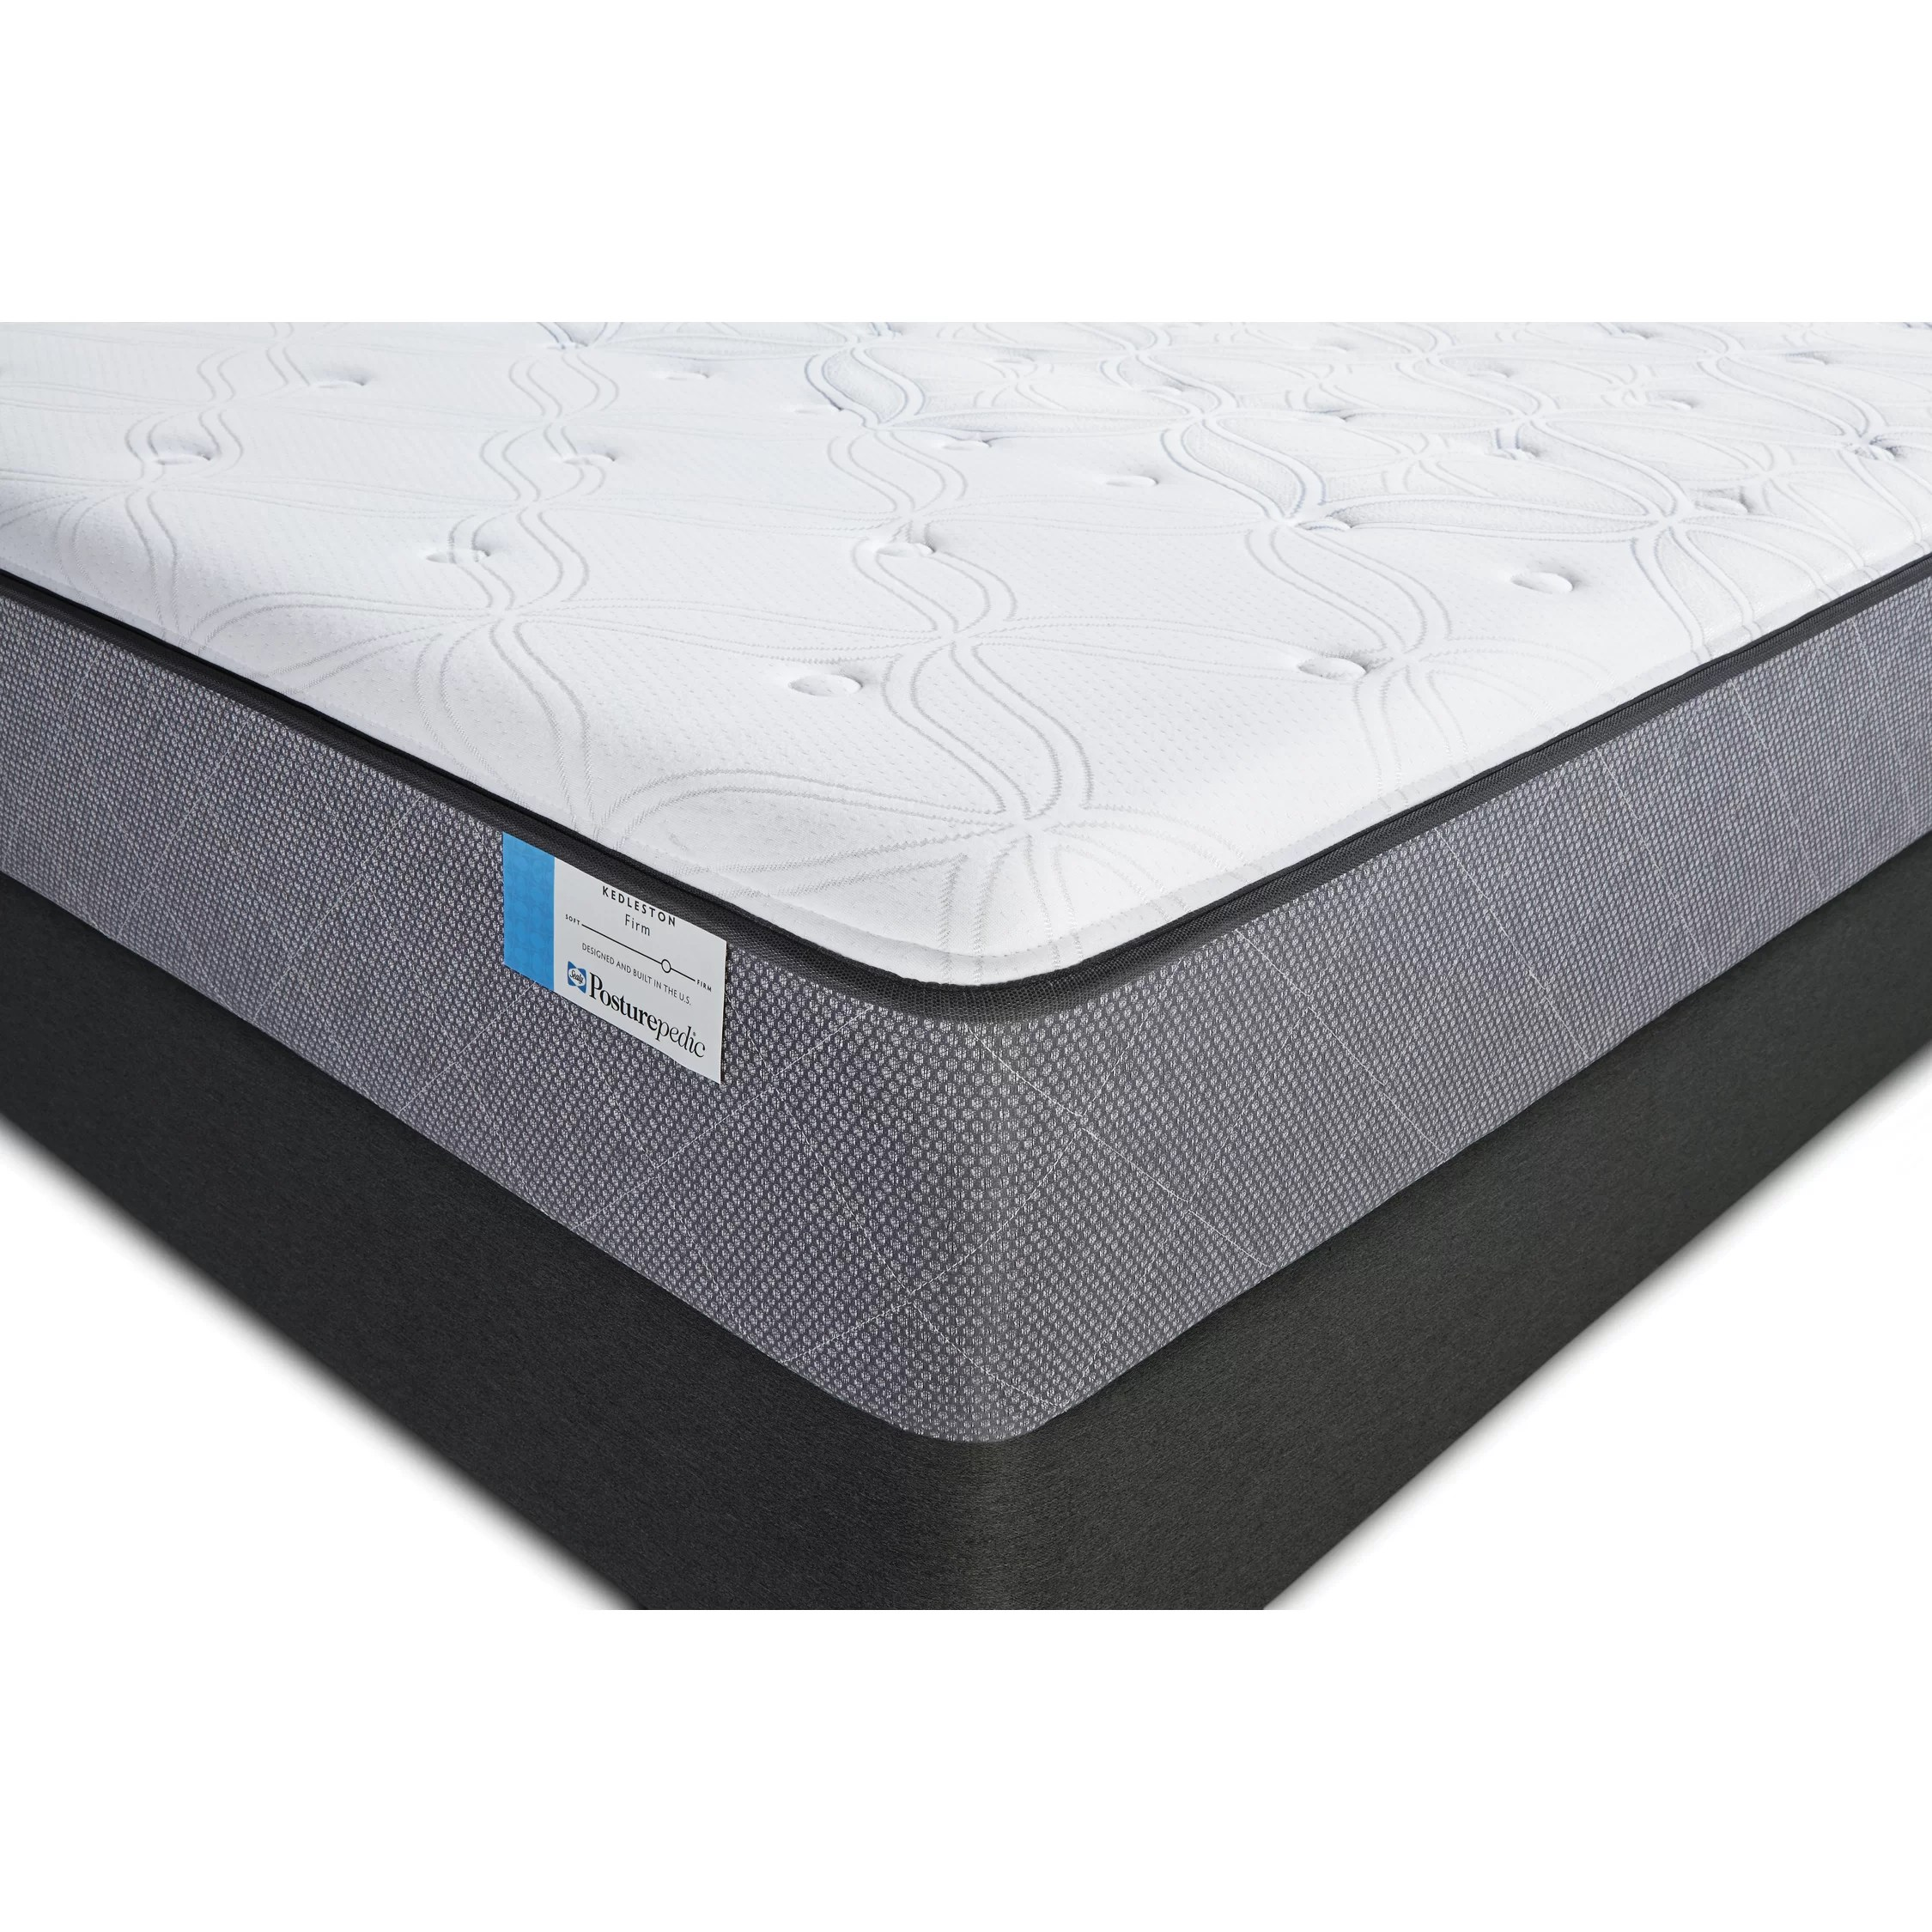 Sealy Posturepedic Backcare Elite Mattress Firm Mattress Sealy Firm Mattress Reviews